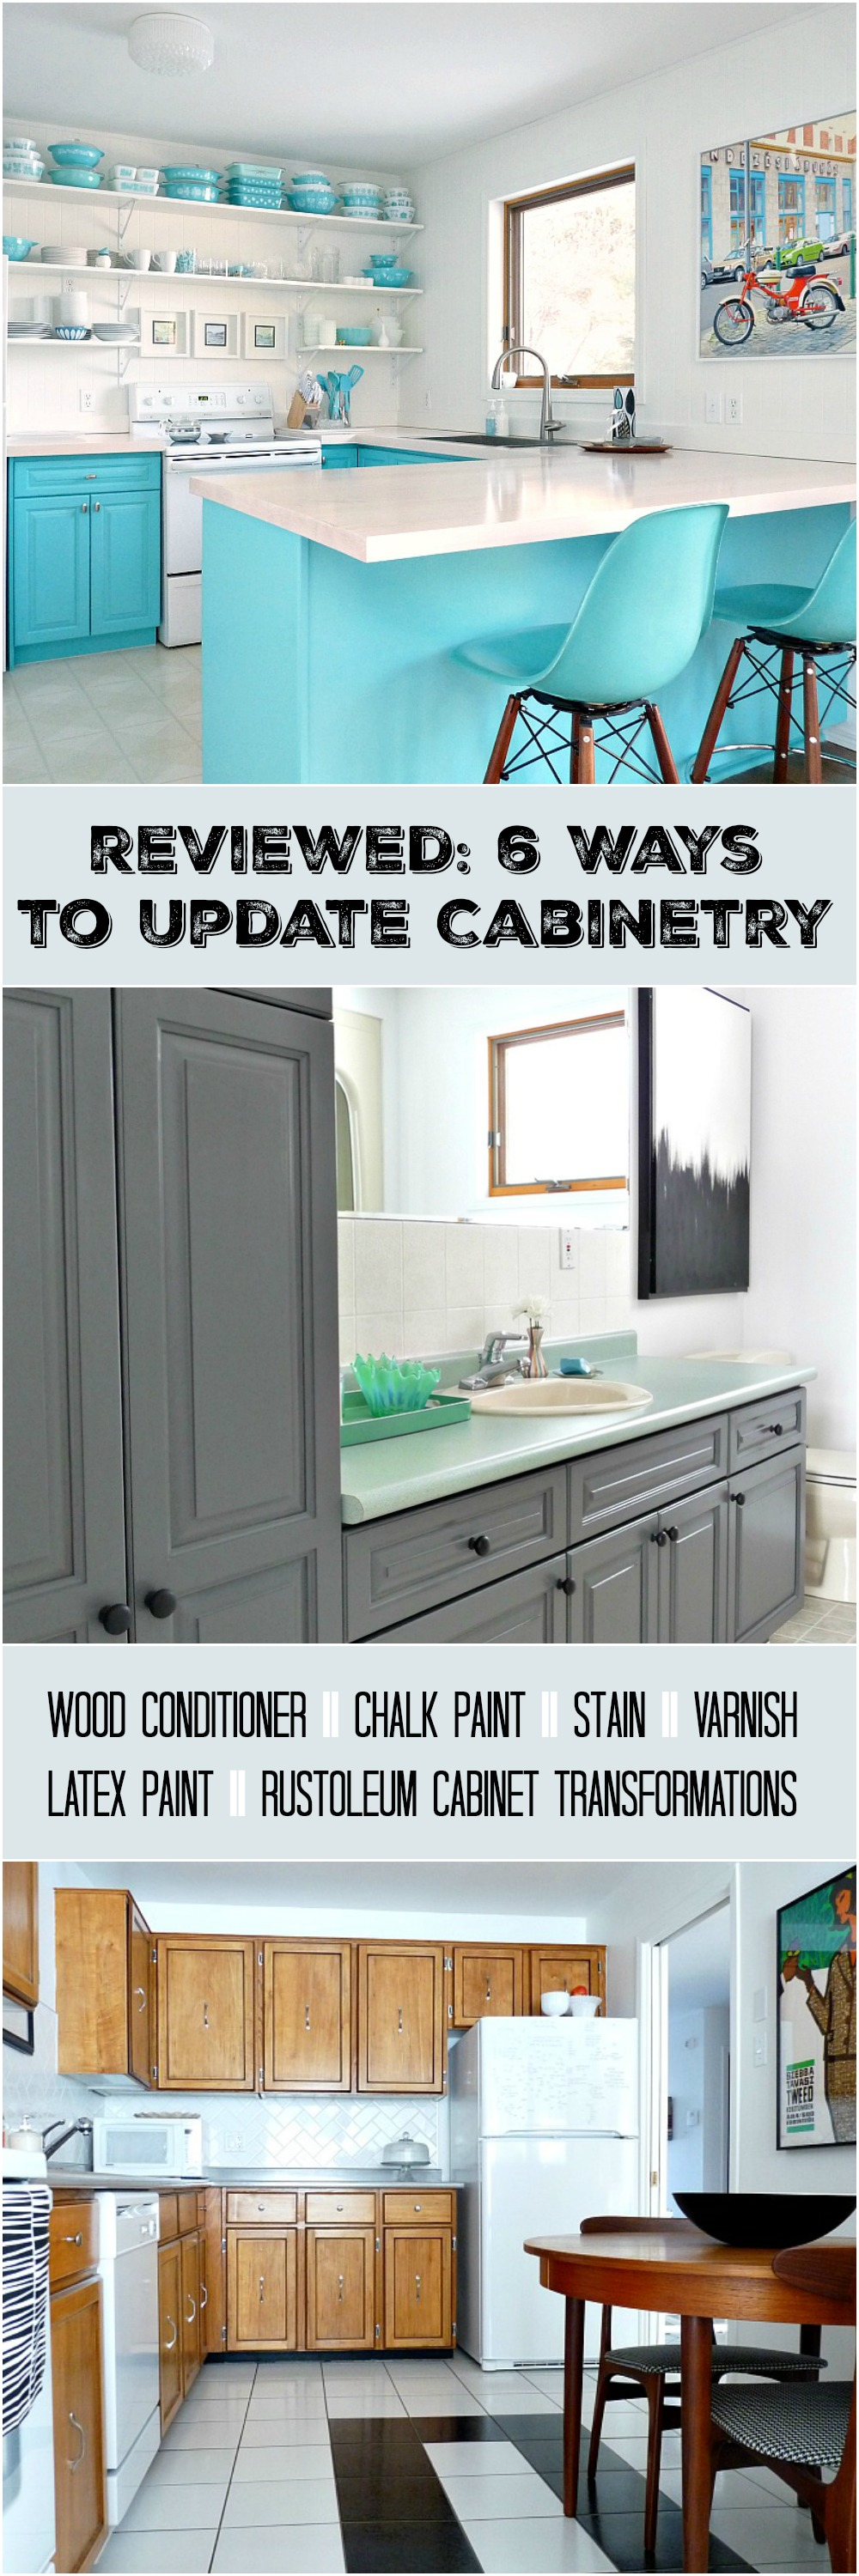 Cabinet Refinishing 101: Latex Paint Vs. Stain Vs. Rust Oleum Cabinet  Transformations Vs. Varnish Vs. Chalk Paint Vs. Wood Conditioner